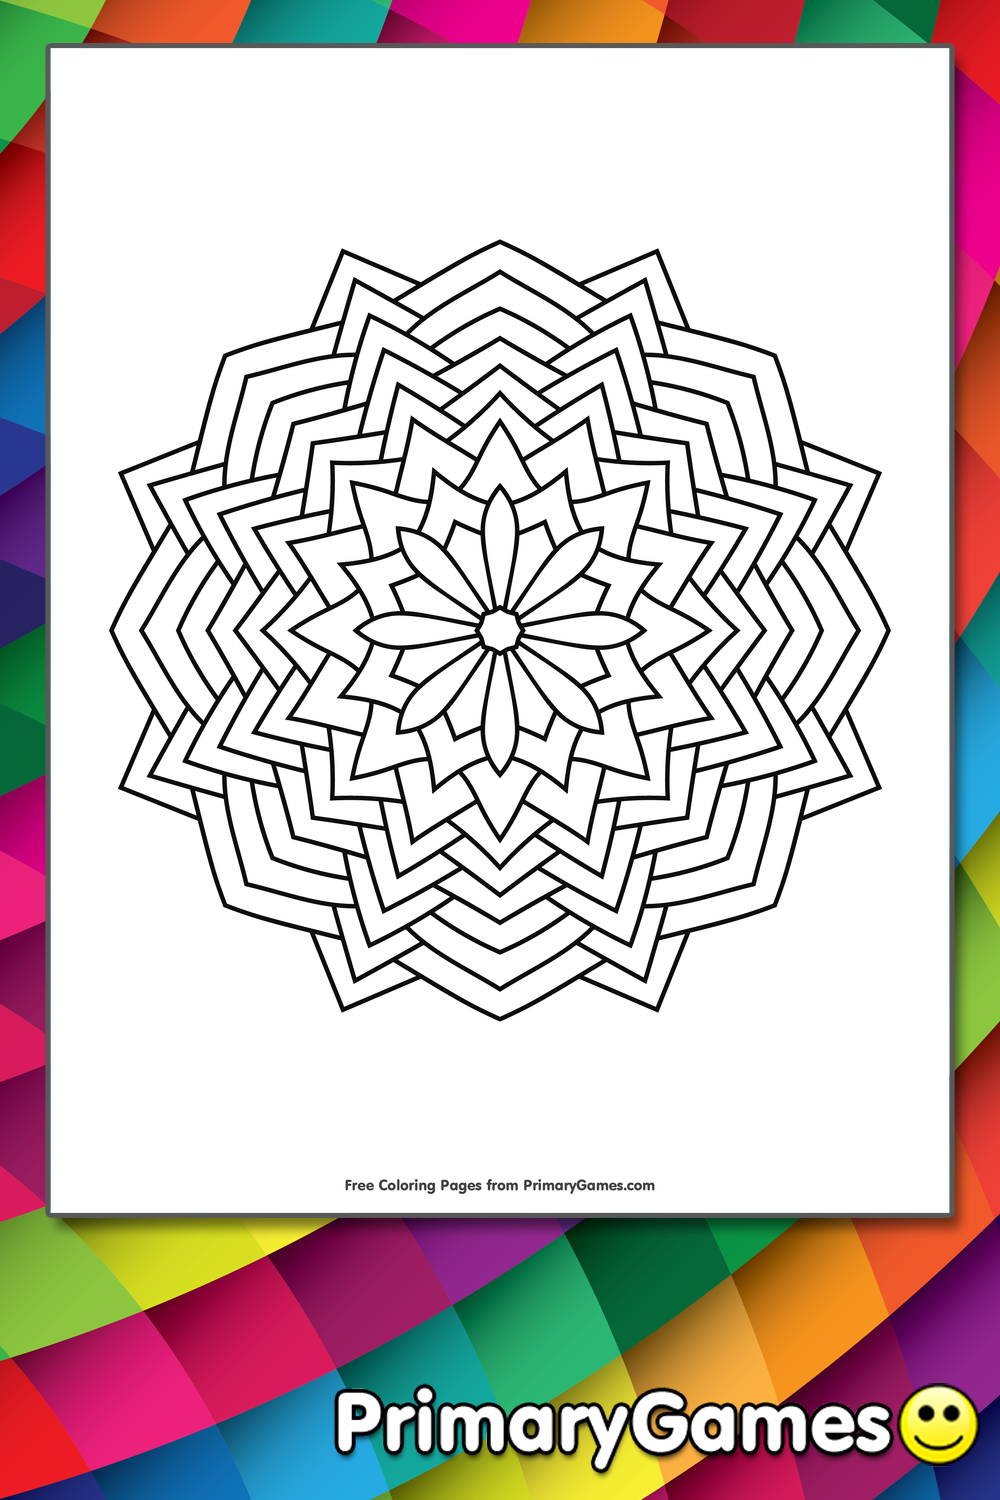 Geometric Mandala Coloring Page Free Printable Pdf From Primarygames